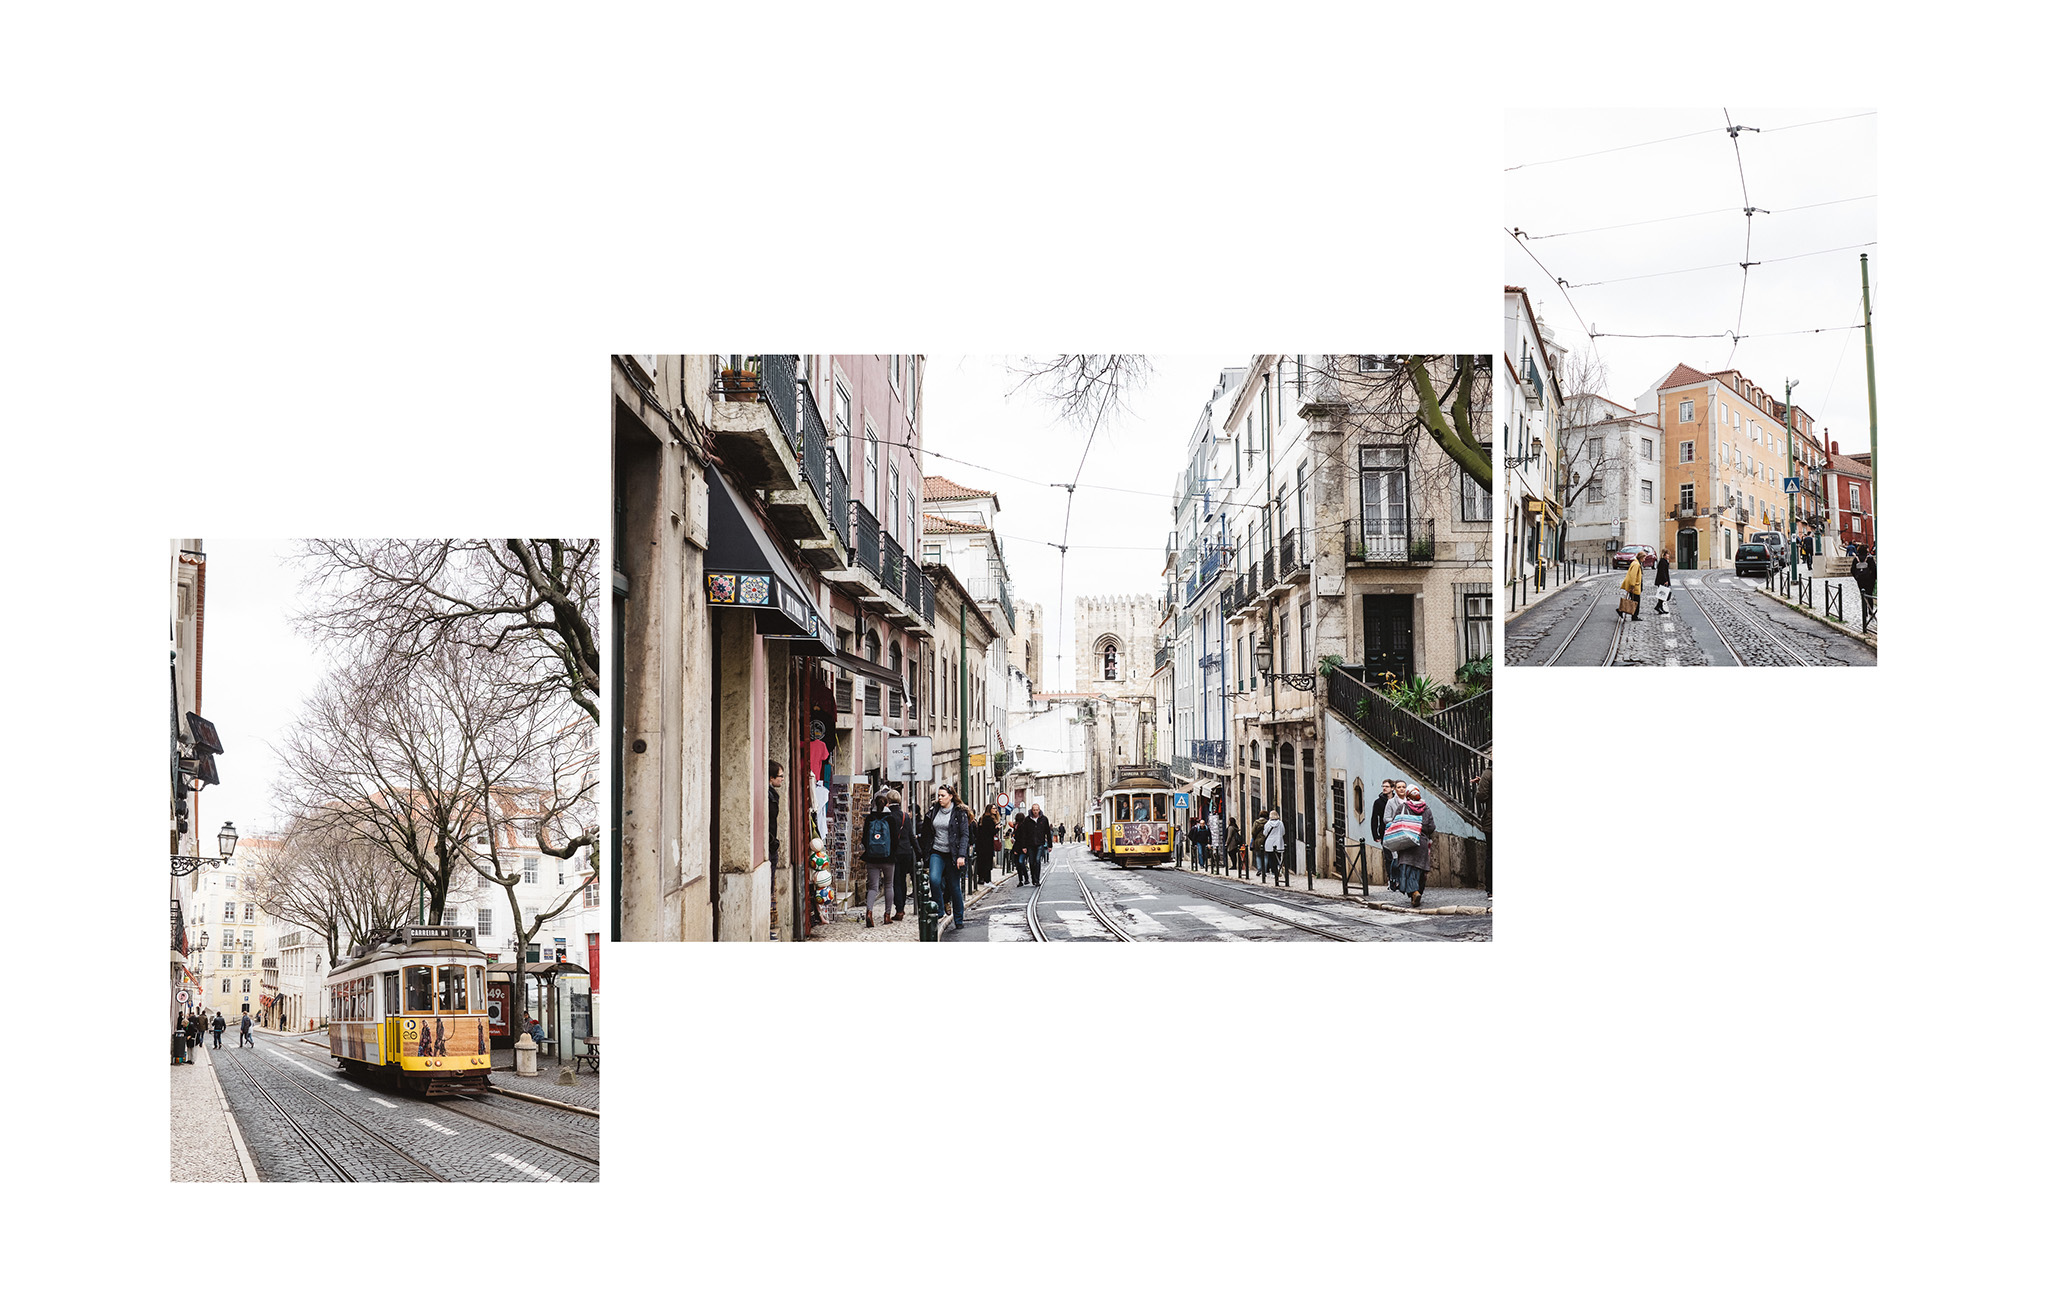 Trams in the streets of Alfama, Lisbon